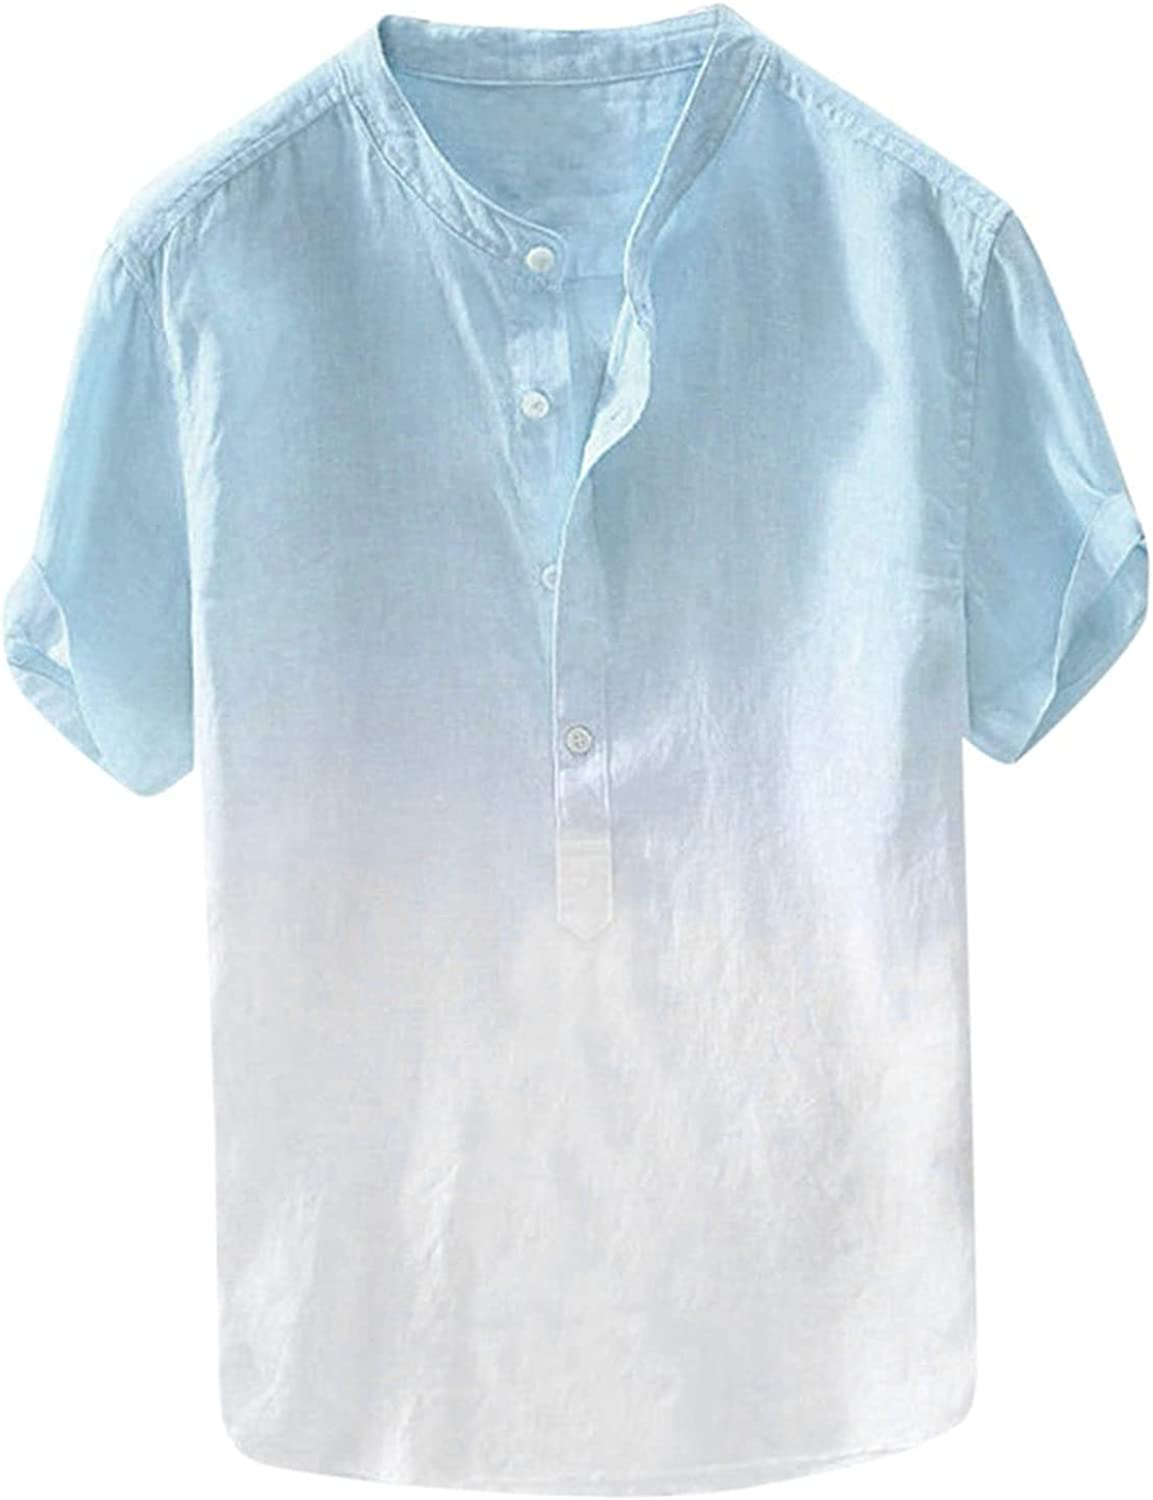 Mens Big and Tall Button Down Shirts Casual Summer Short Sleeve Tops Tie Dye Printed Round Neck T-Shirt Beach Tees